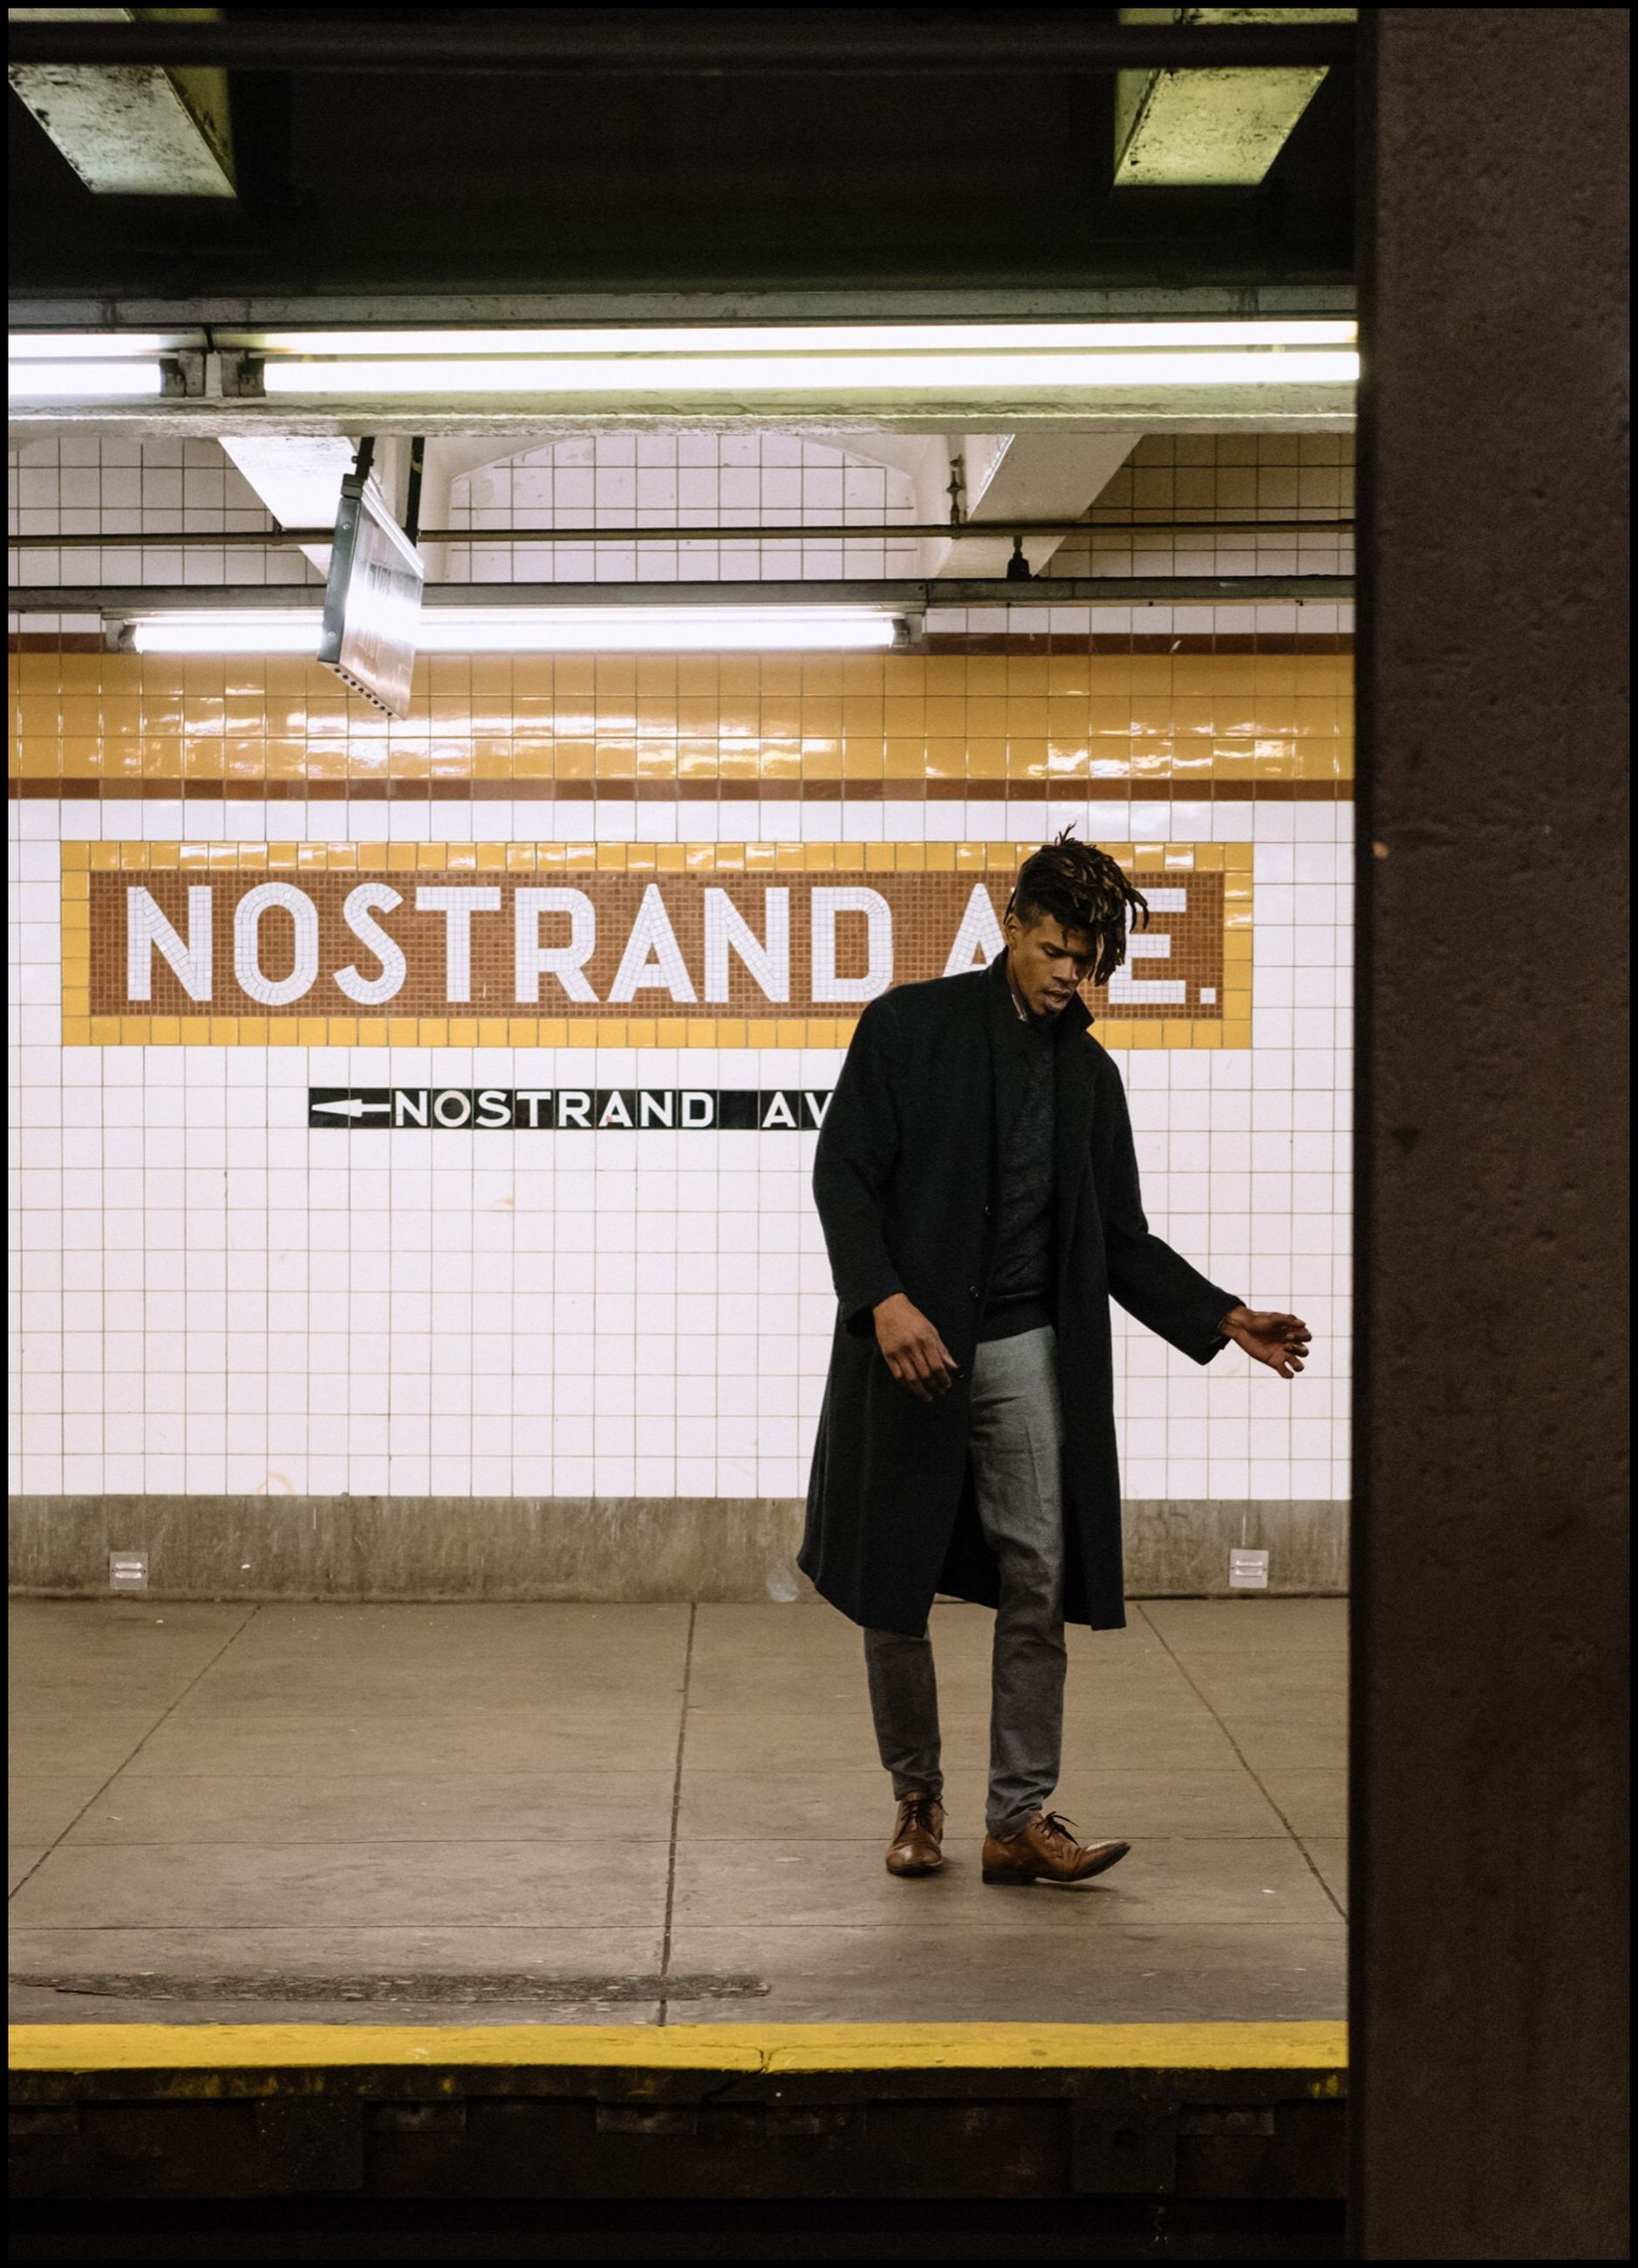 full length, real people, one person, text, young men, standing, casual clothing, communication, men, leisure activity, lifestyles, architecture, young adult, built structure, indoors, transportation, public transportation, subway station, waiting